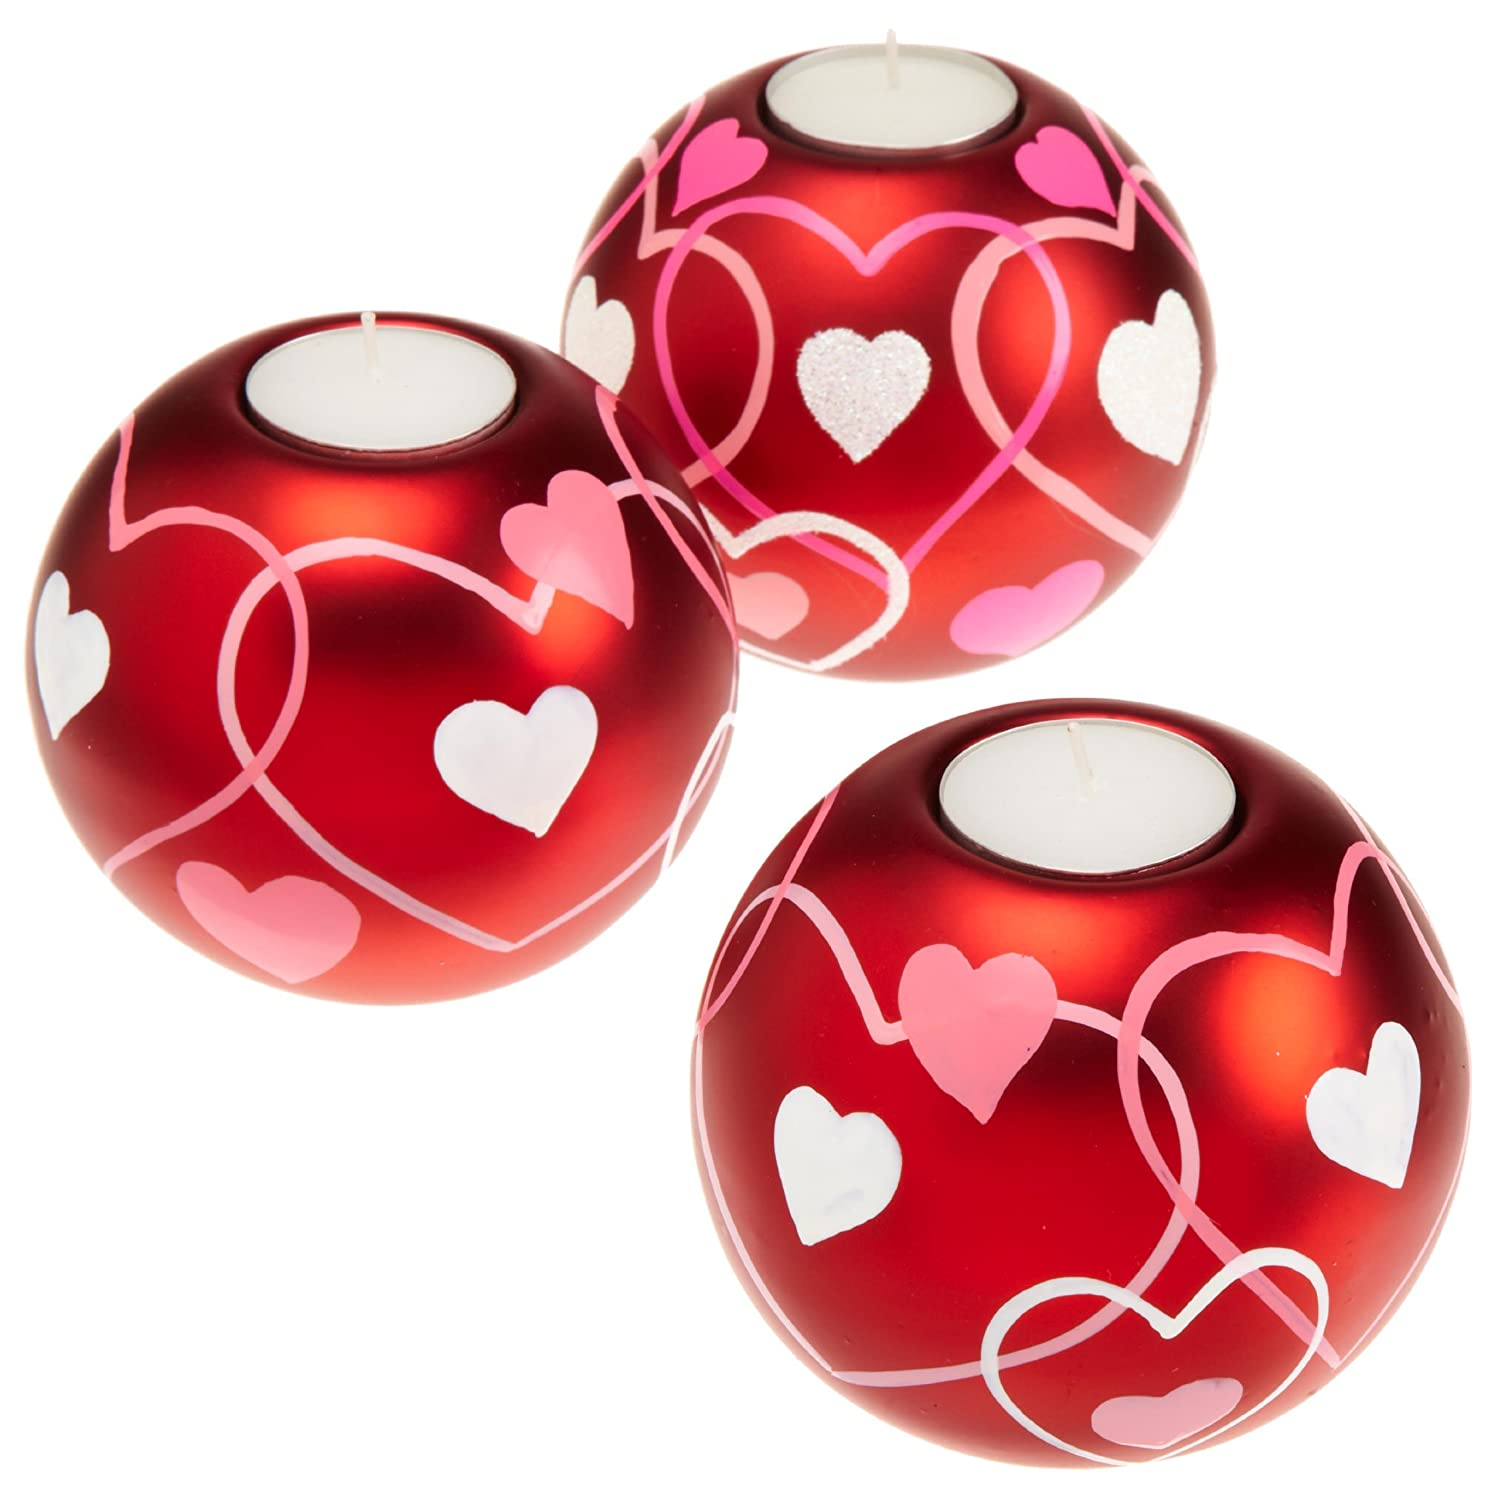 DII Red Hearts Ball Tealight Holder, Ceramic, Large, Set of 3